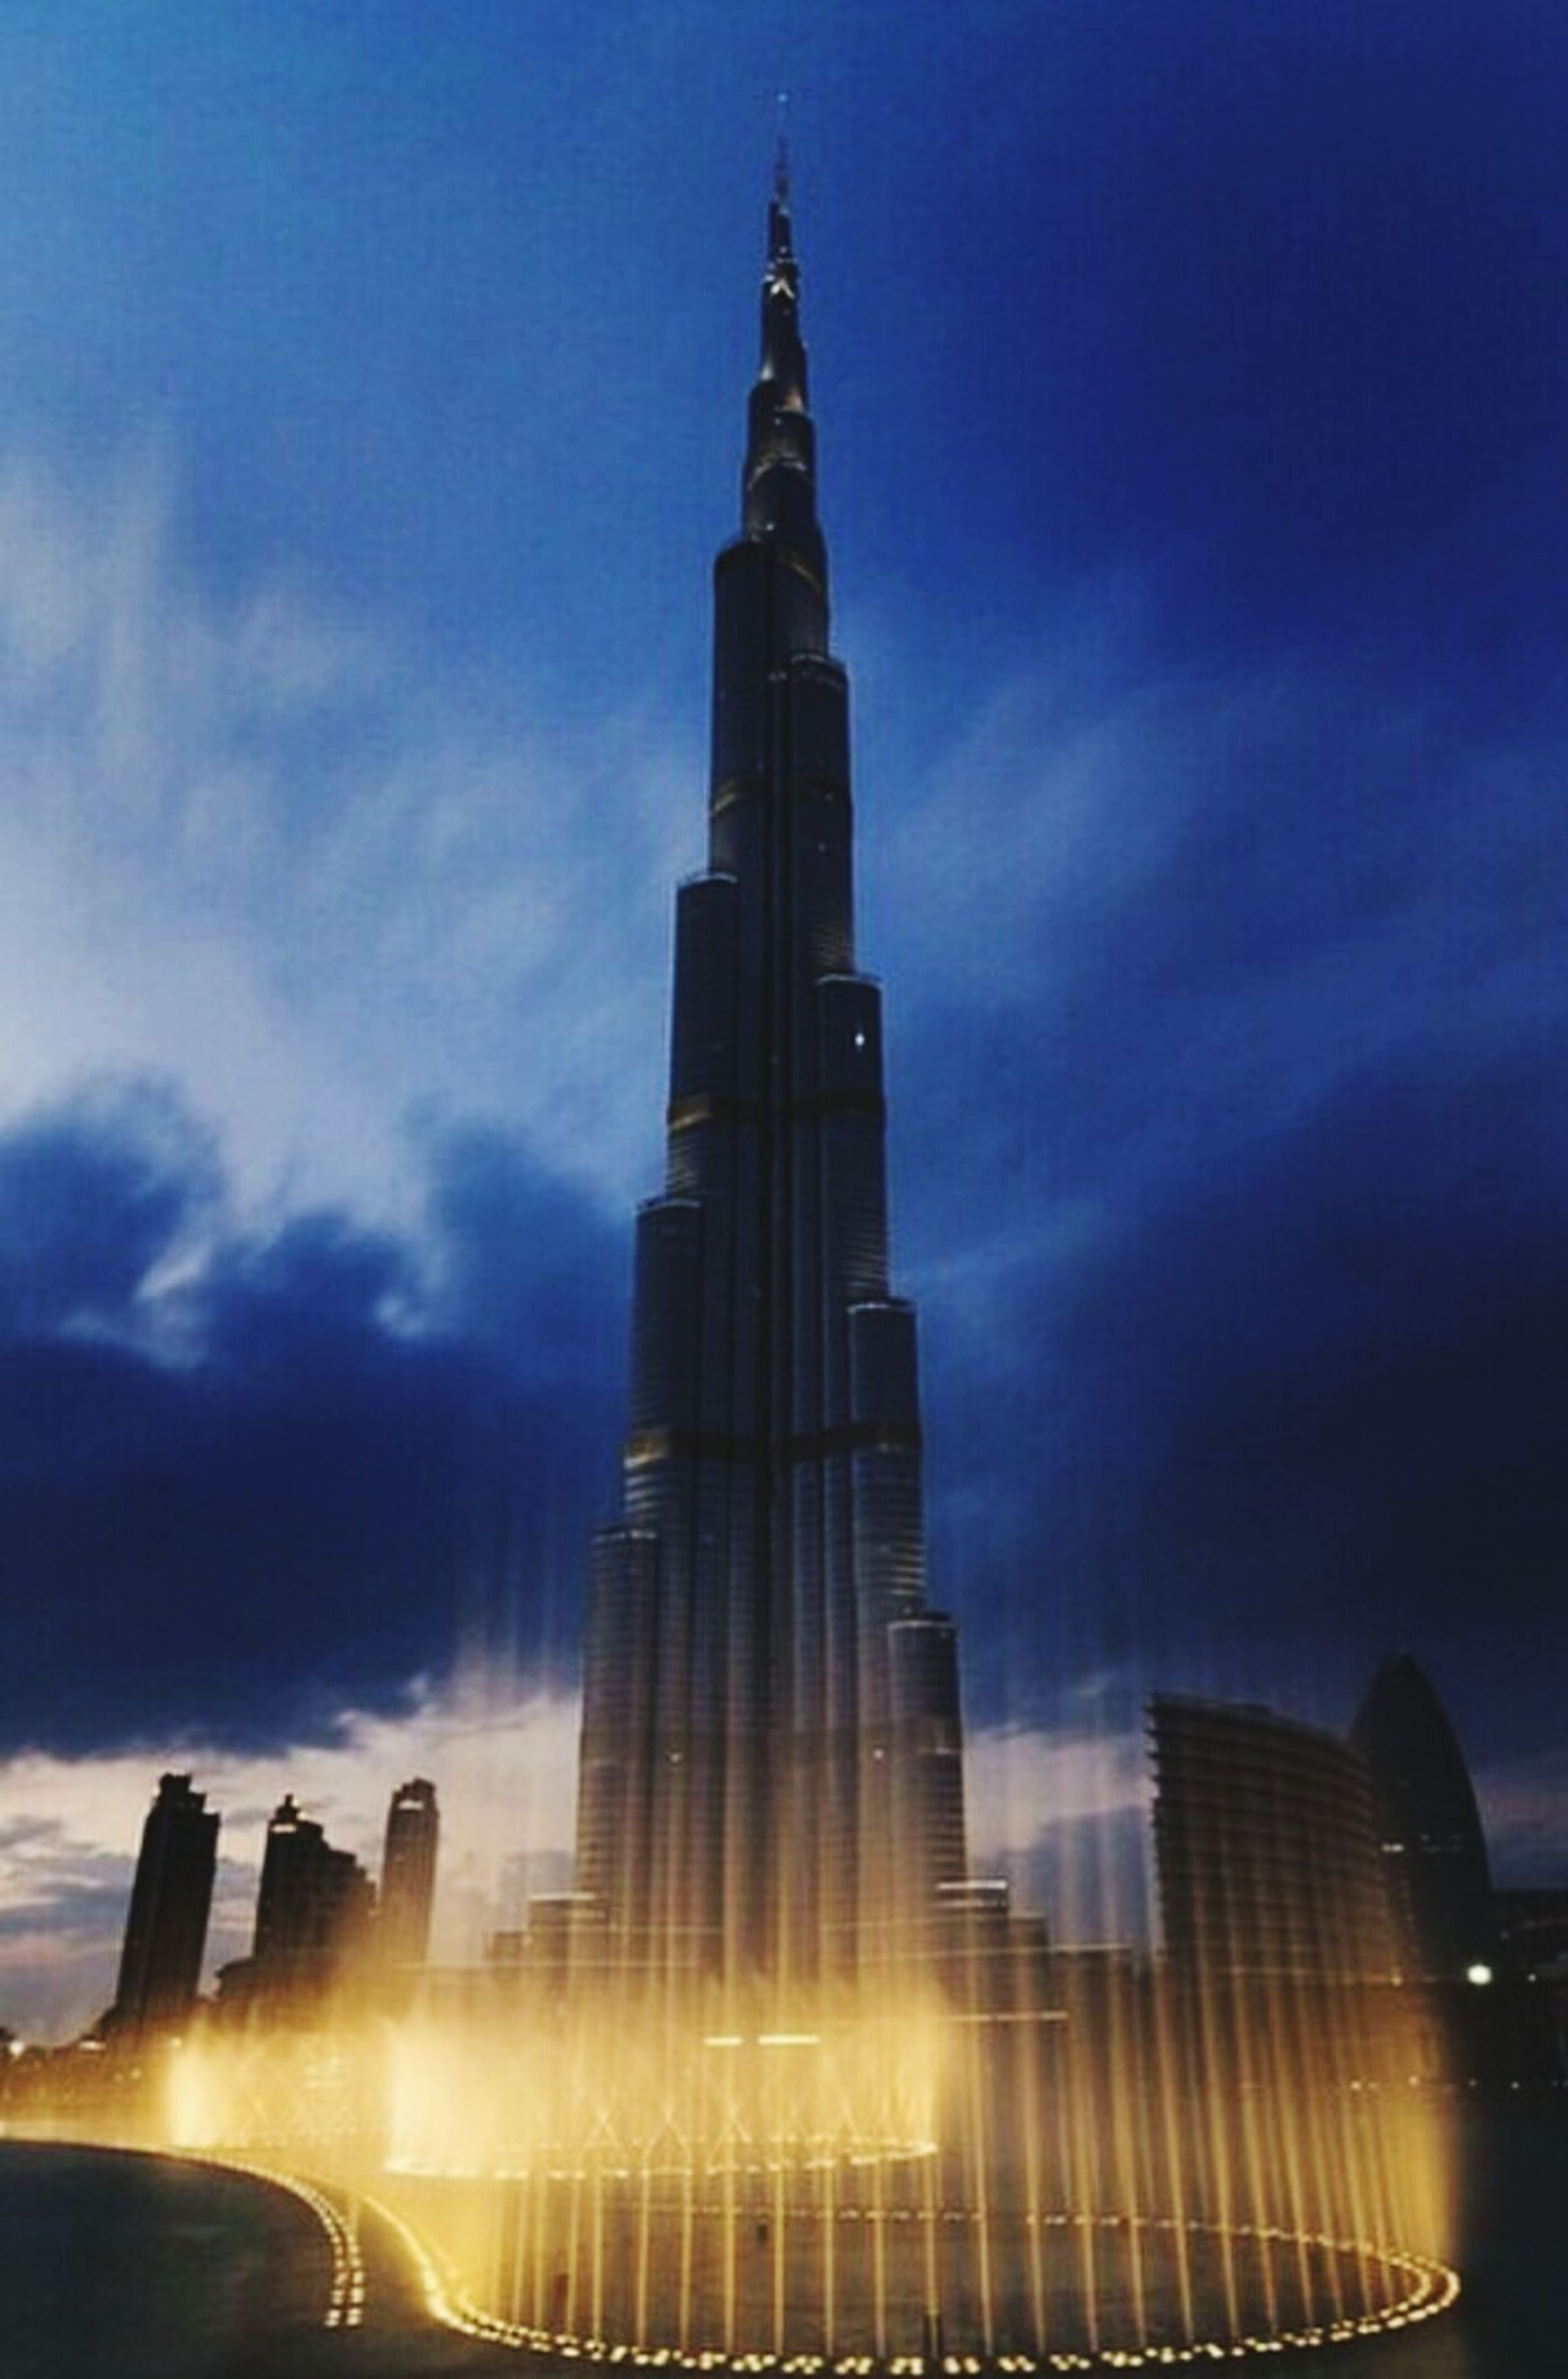 sky, architecture, tower, night, low angle view, built structure, outdoors, no people, skyscraper, illuminated